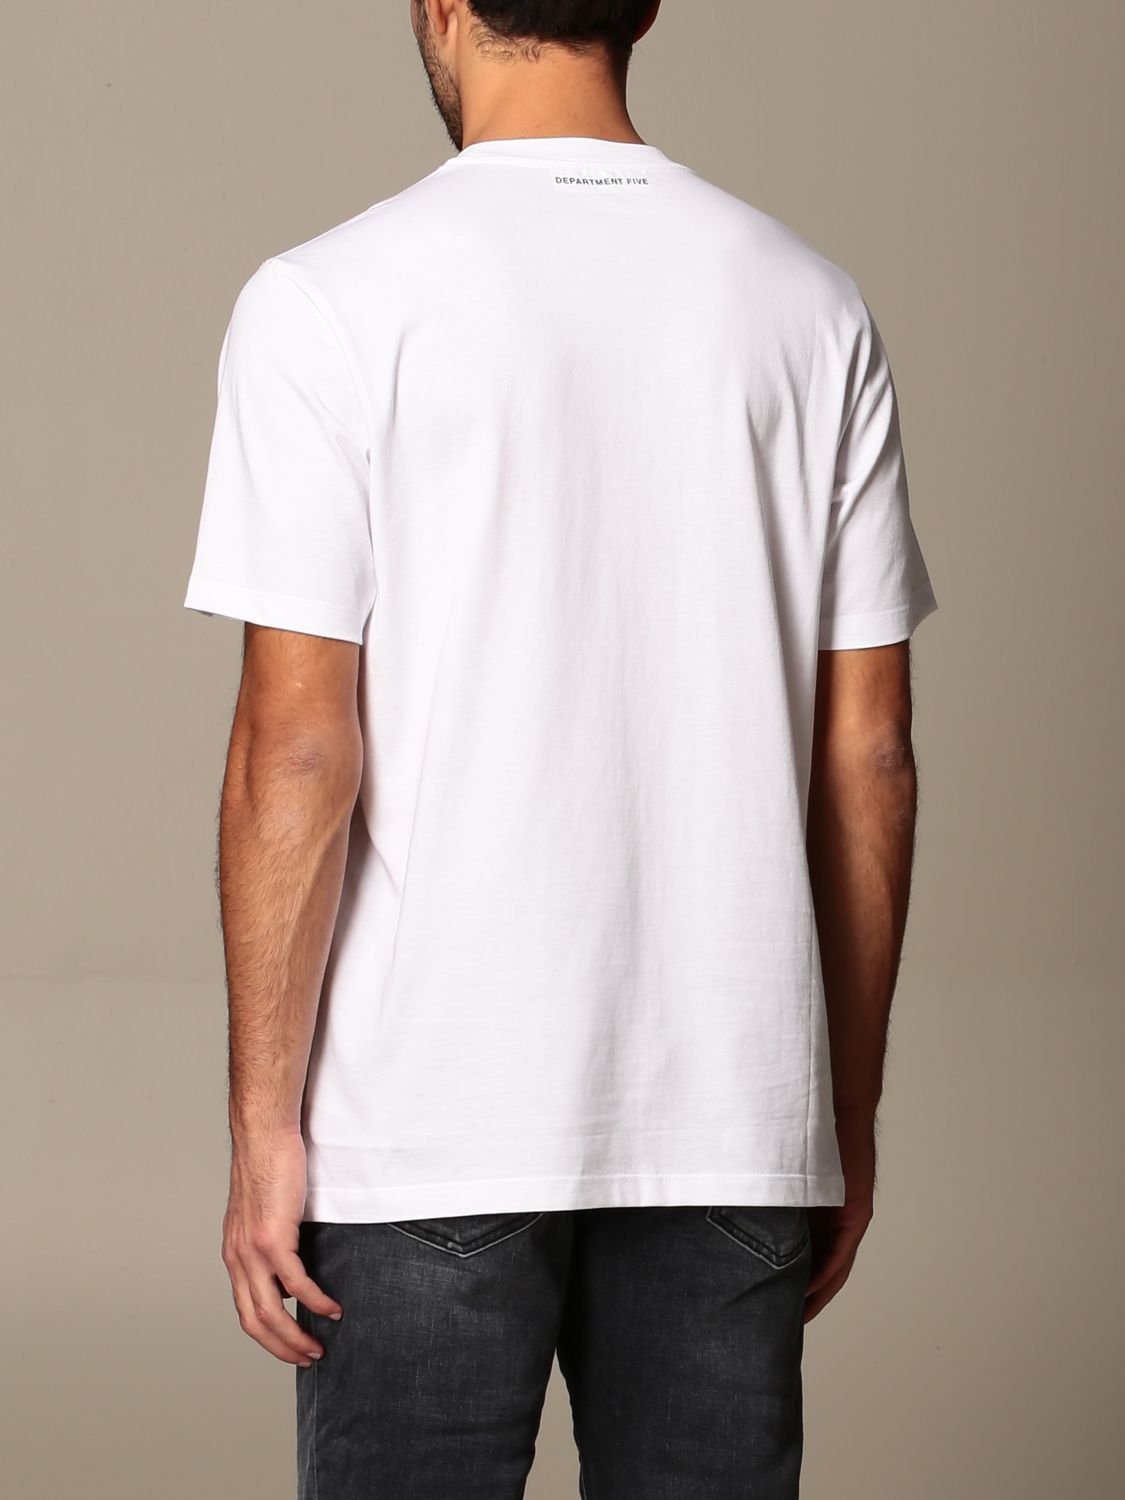 Camiseta Department 5: Camiseta hombre Department 5 blanco 2